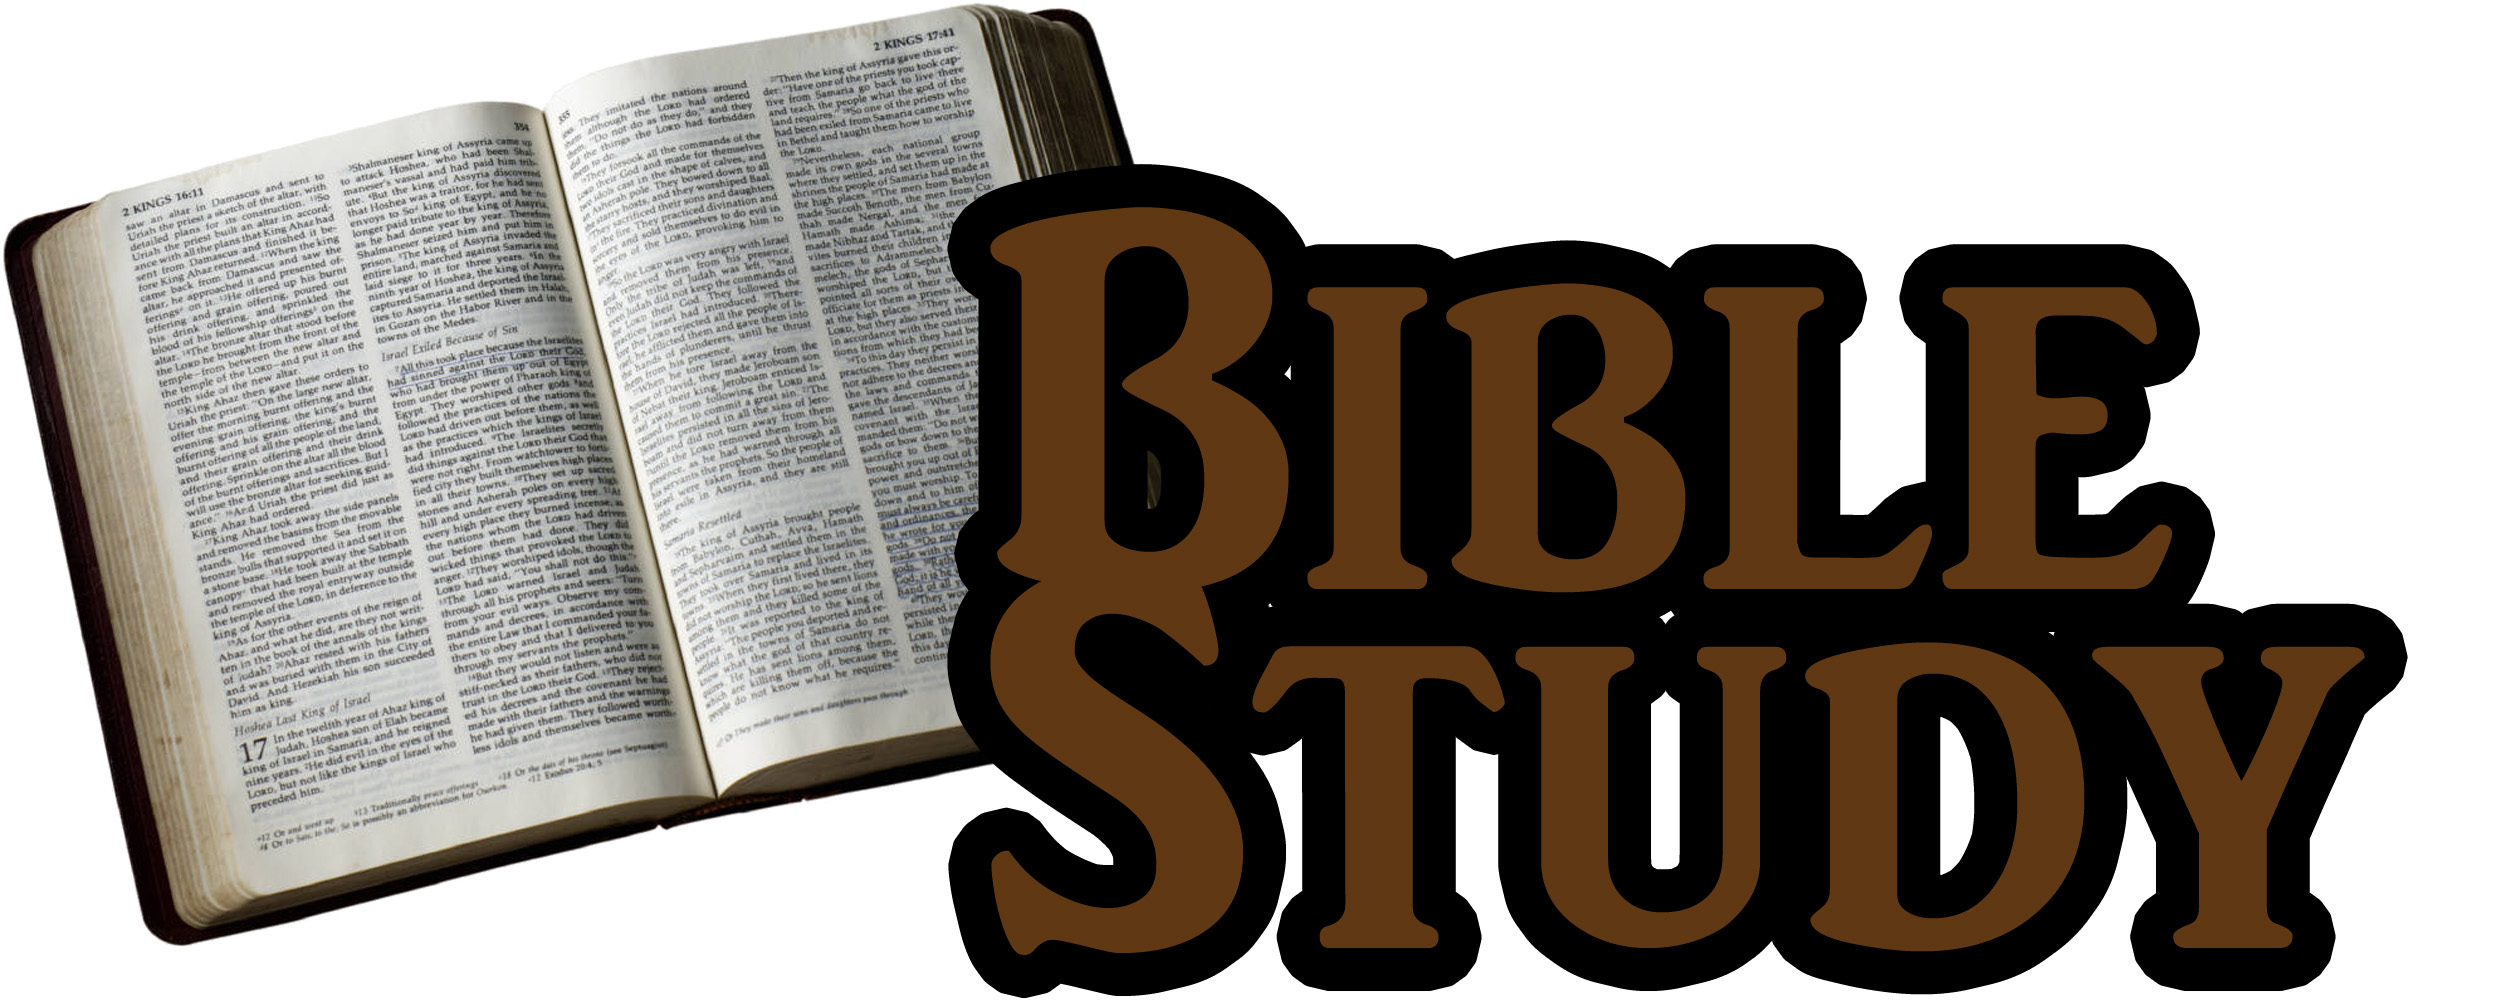 bible study group clip art cliparts bible study clipart at 6 30 bible study clipart youth 2019